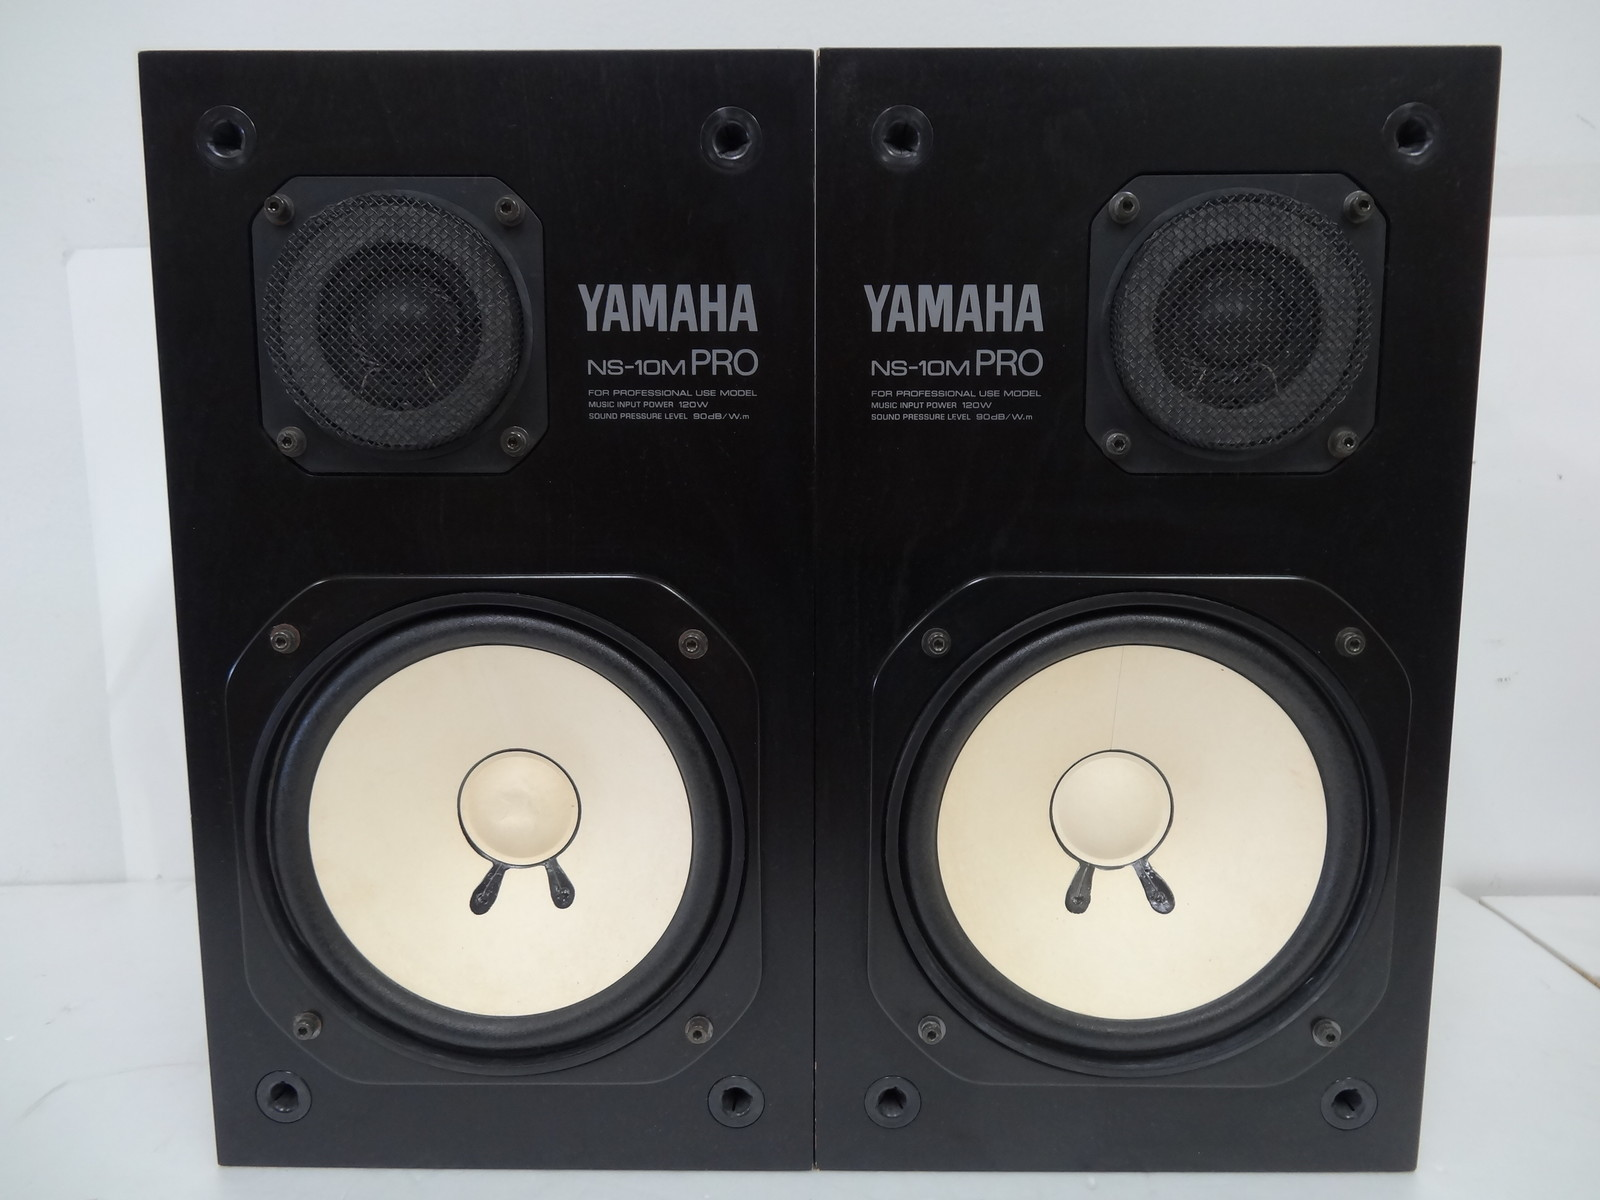 313973d1350511405-yamaha-ns10m-studio-monitors-amplifier-thread-ns-10mpro-2.jpeg